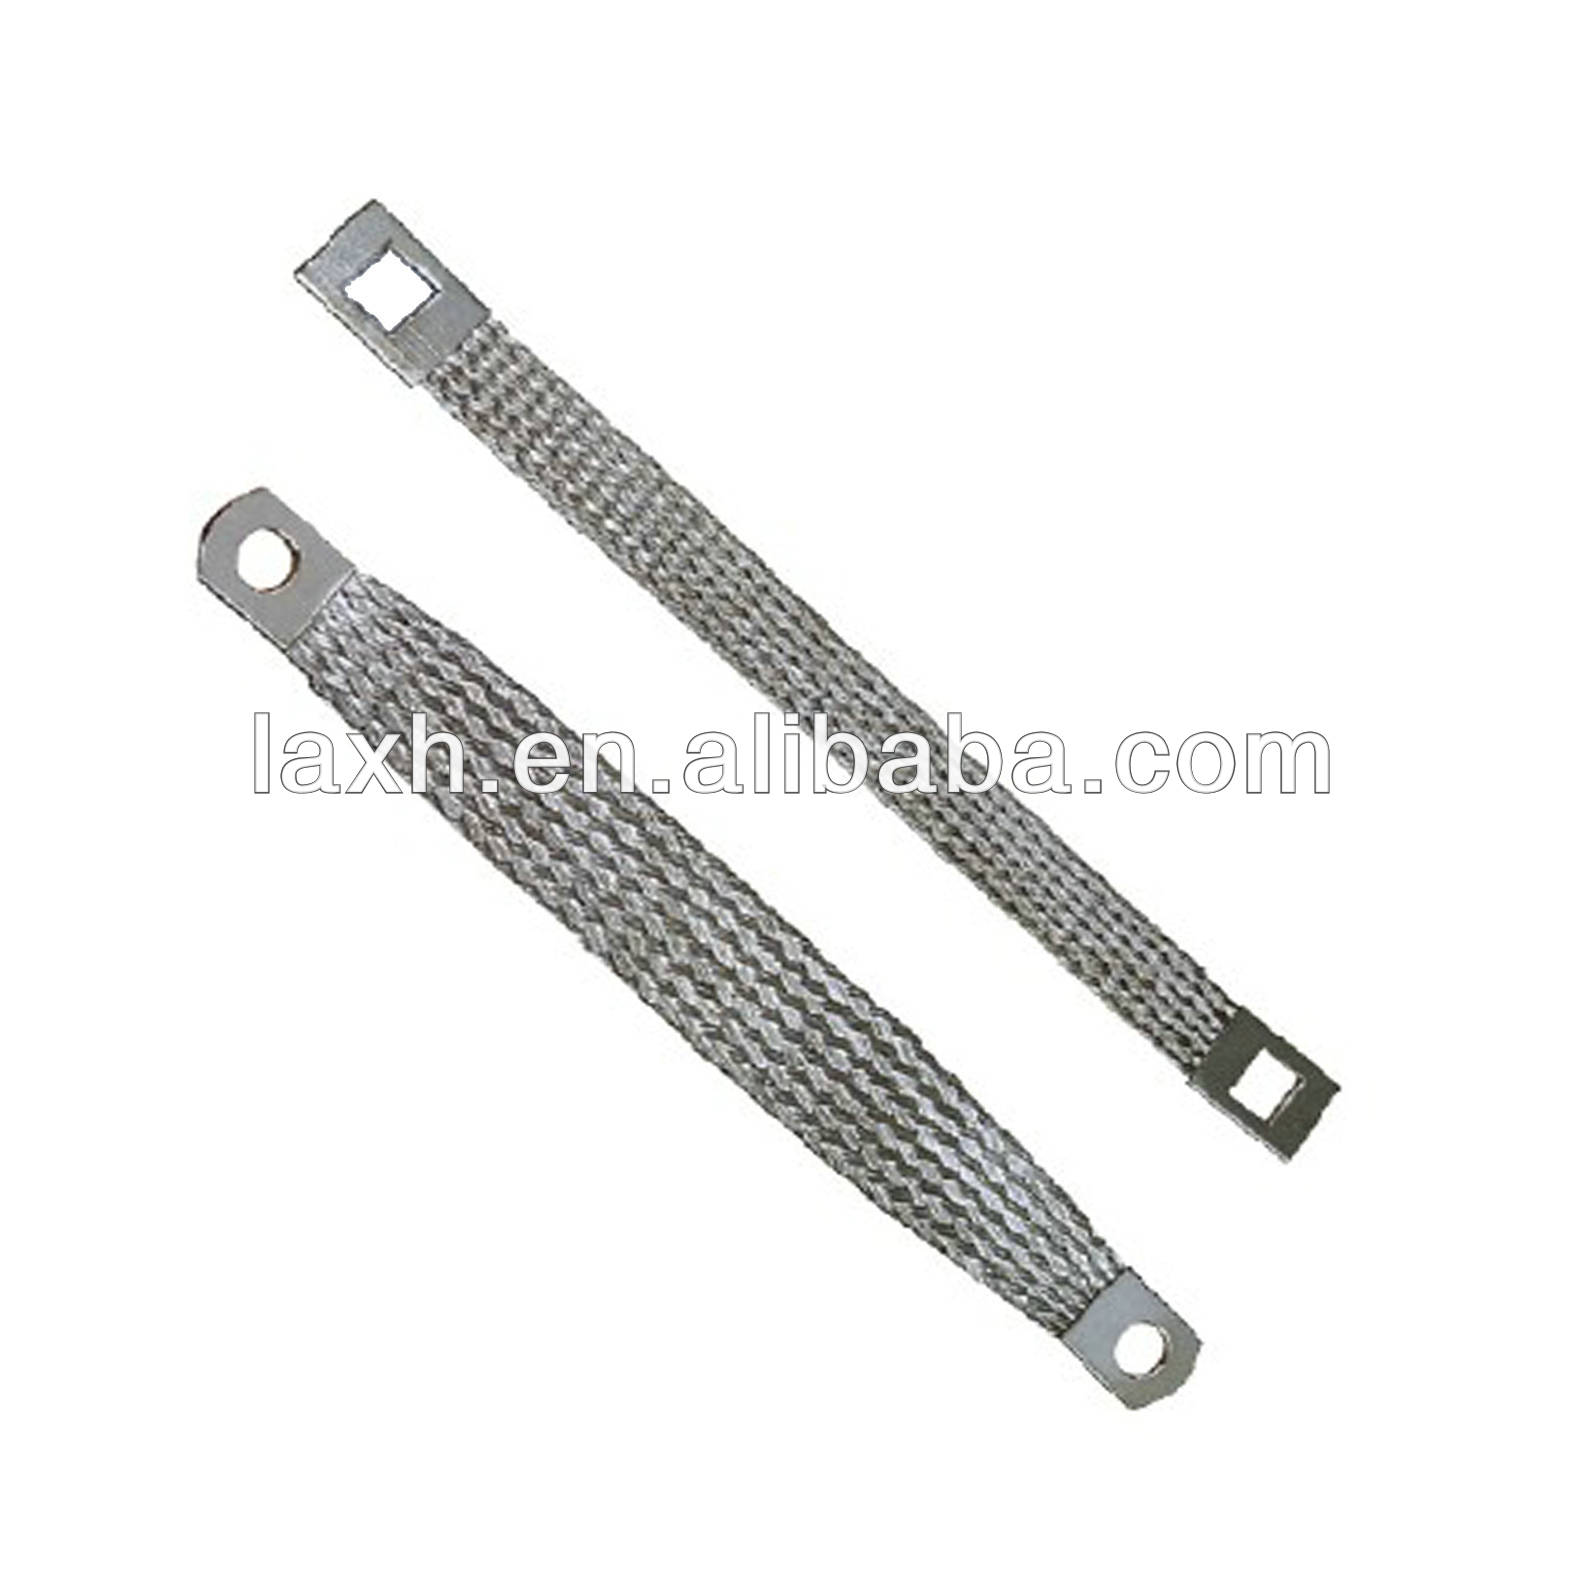 Braided Wire Loom, Braided Wire Loom Suppliers and Manufacturers at ...